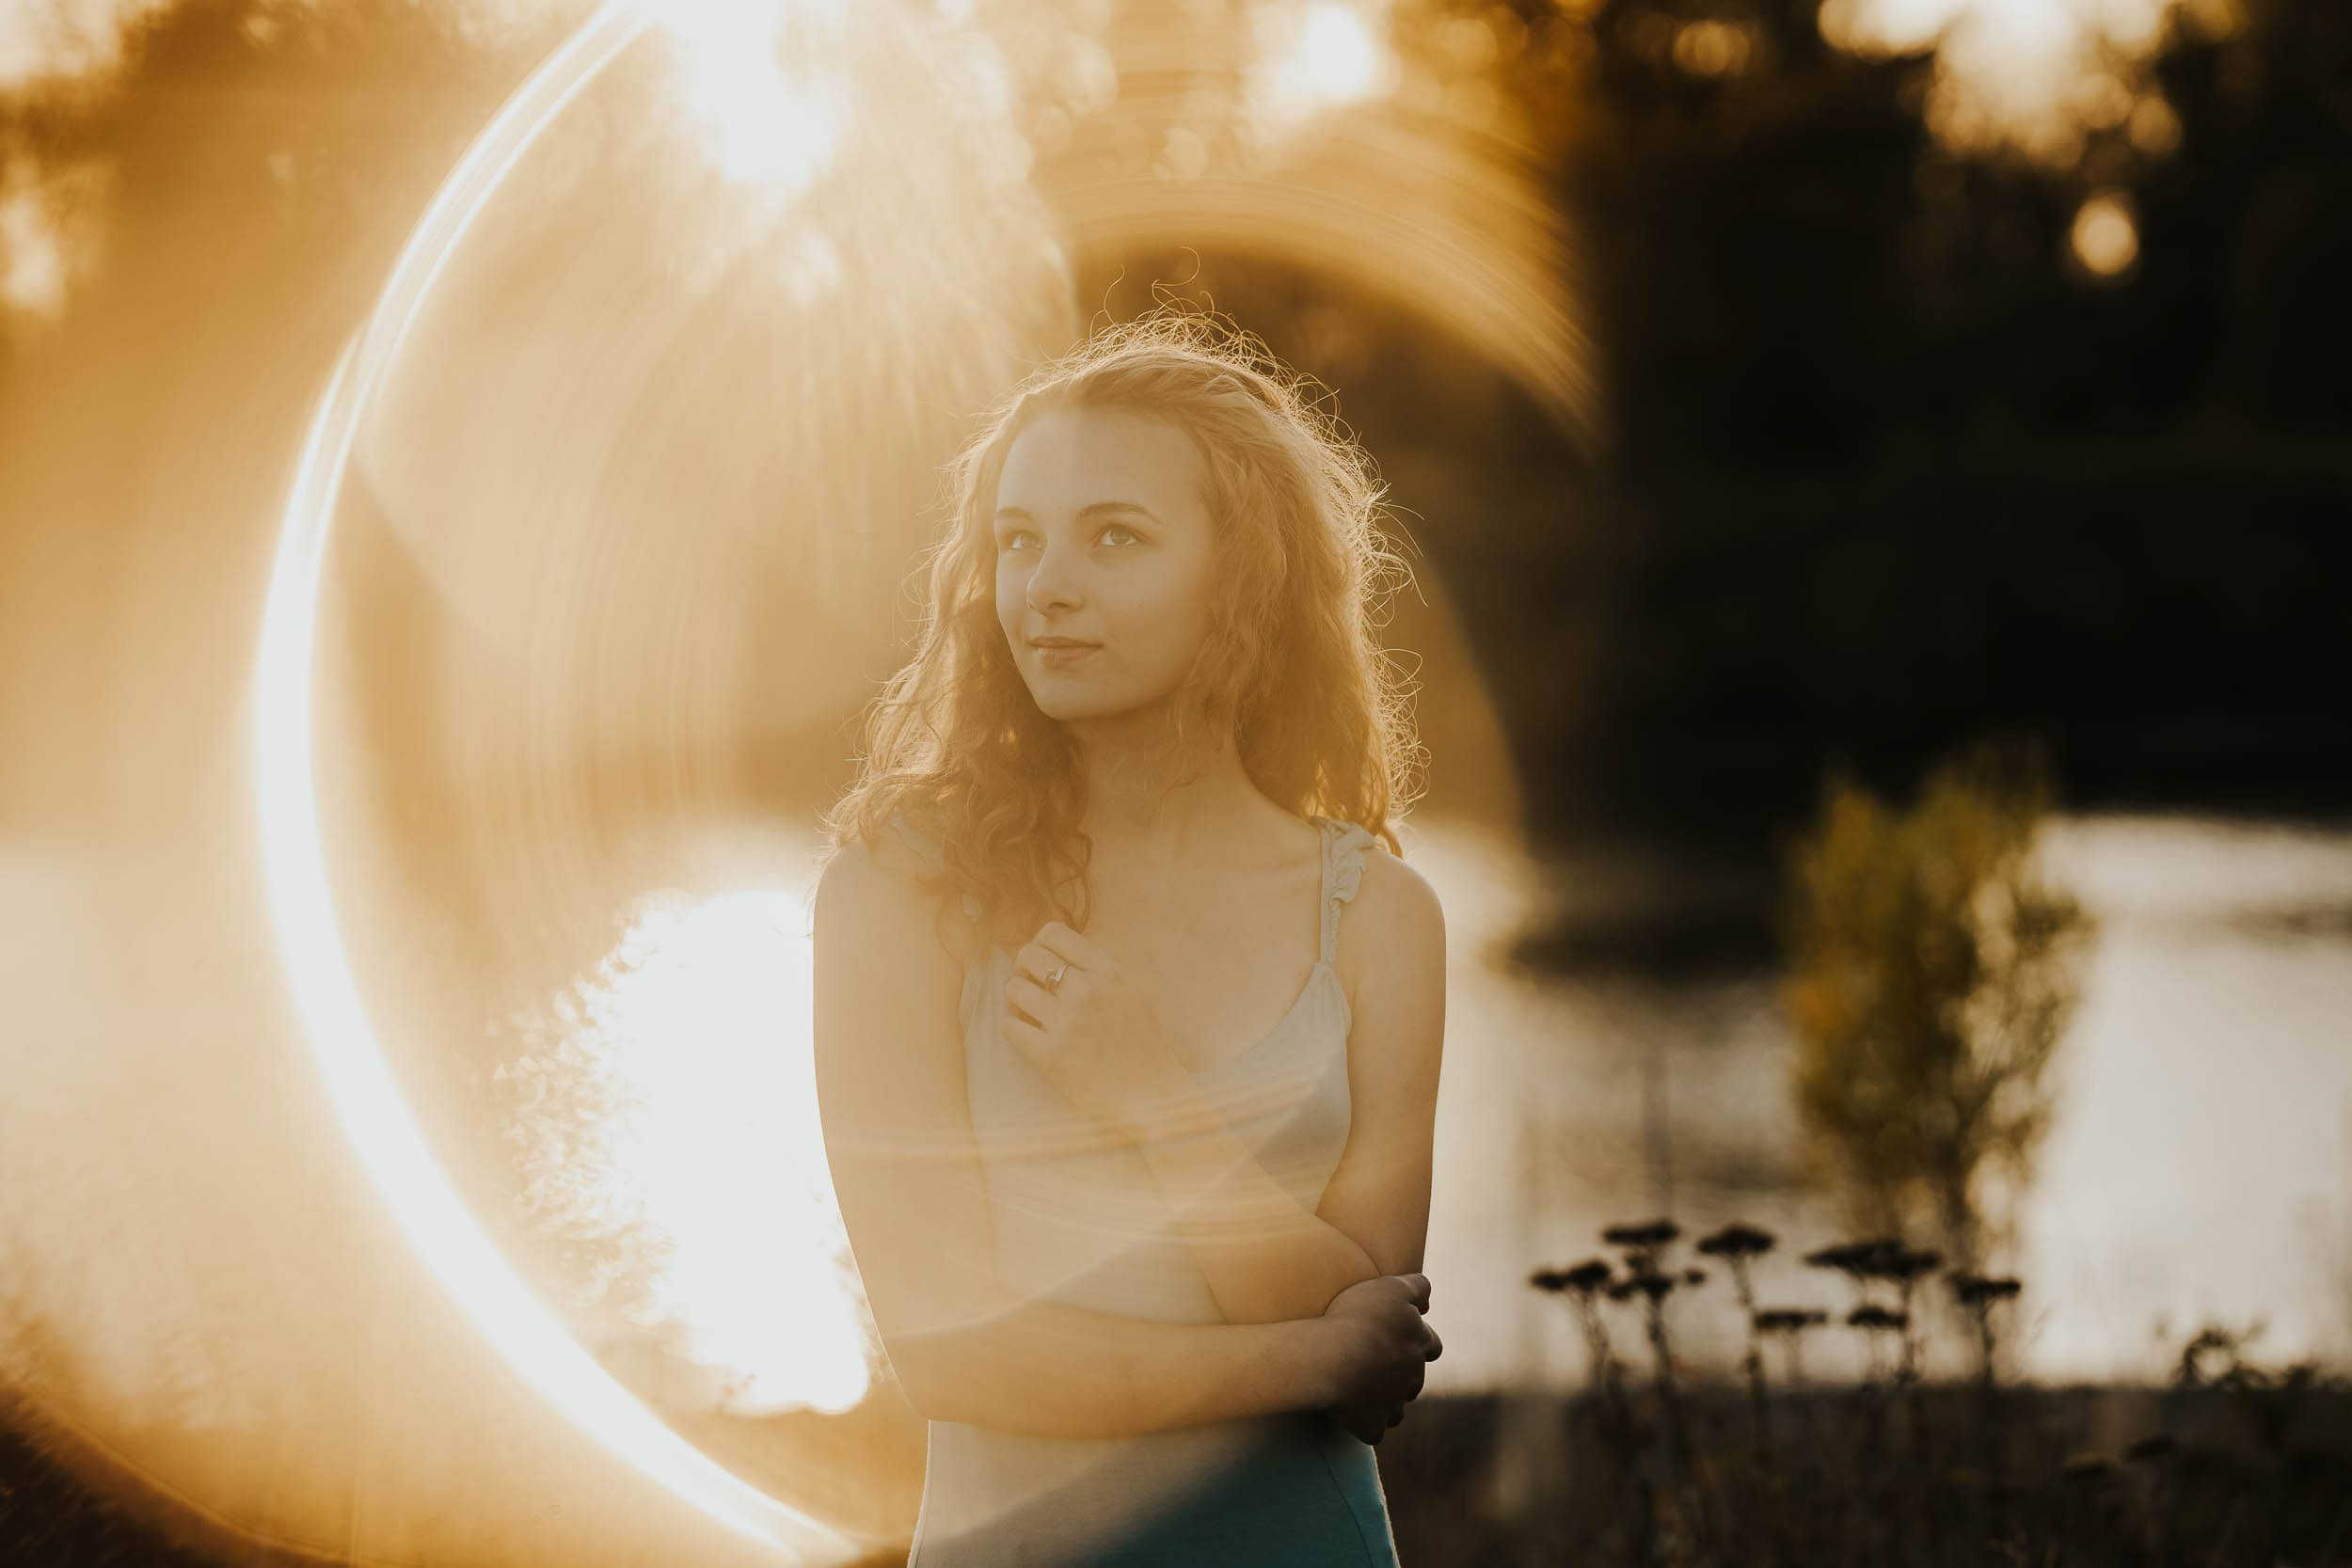 senior girl in turquoise dress with golden ring around her, made by using a glass guitar slide